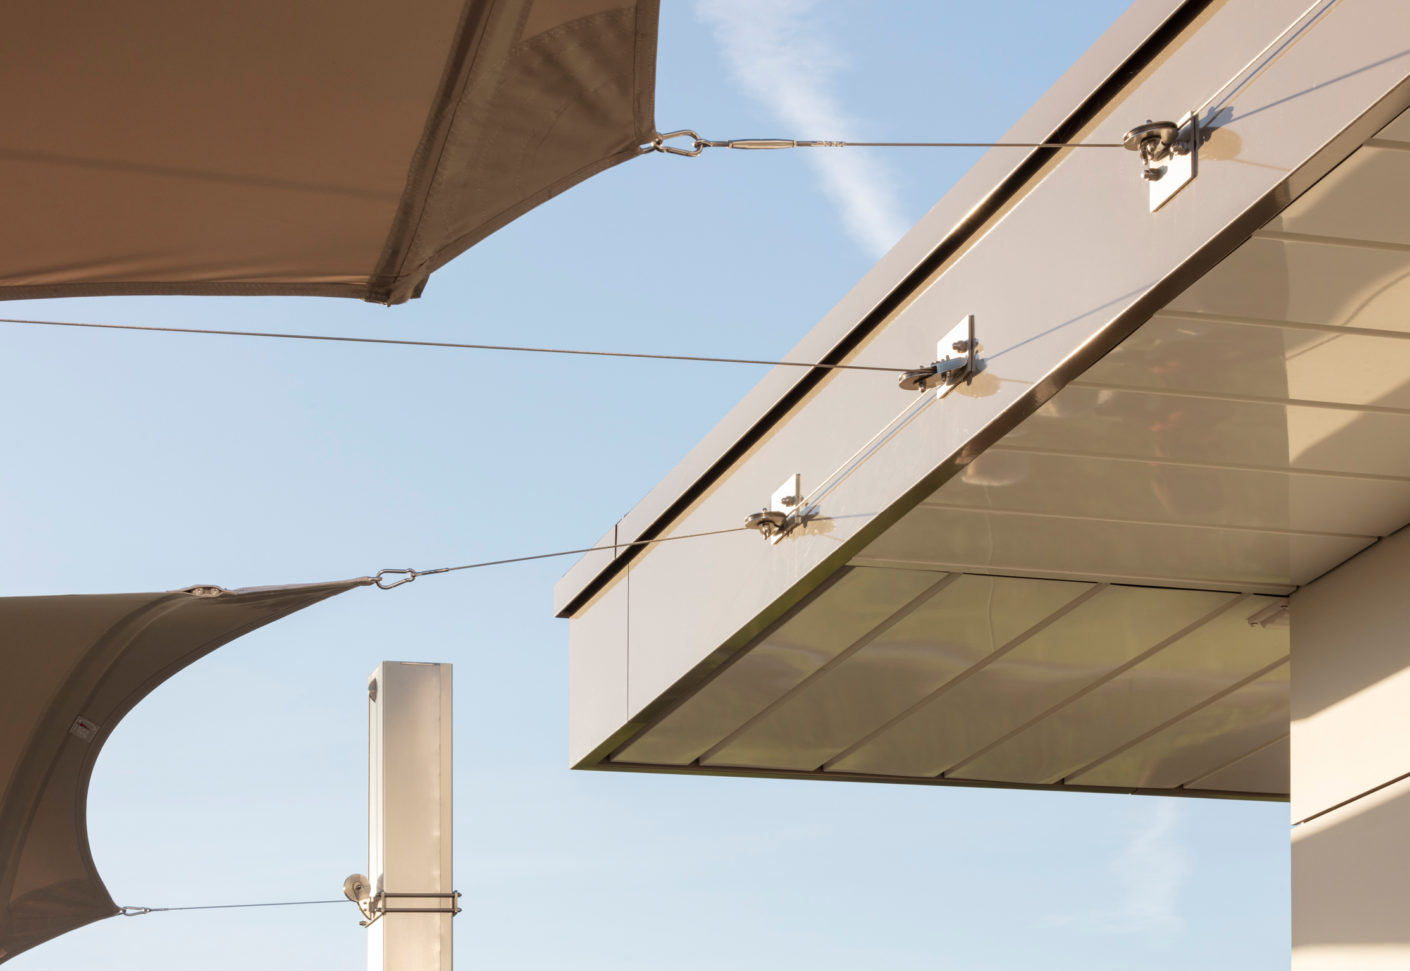 Weather sensors lower the sails if the sun comes out and retract it in the event of wind.